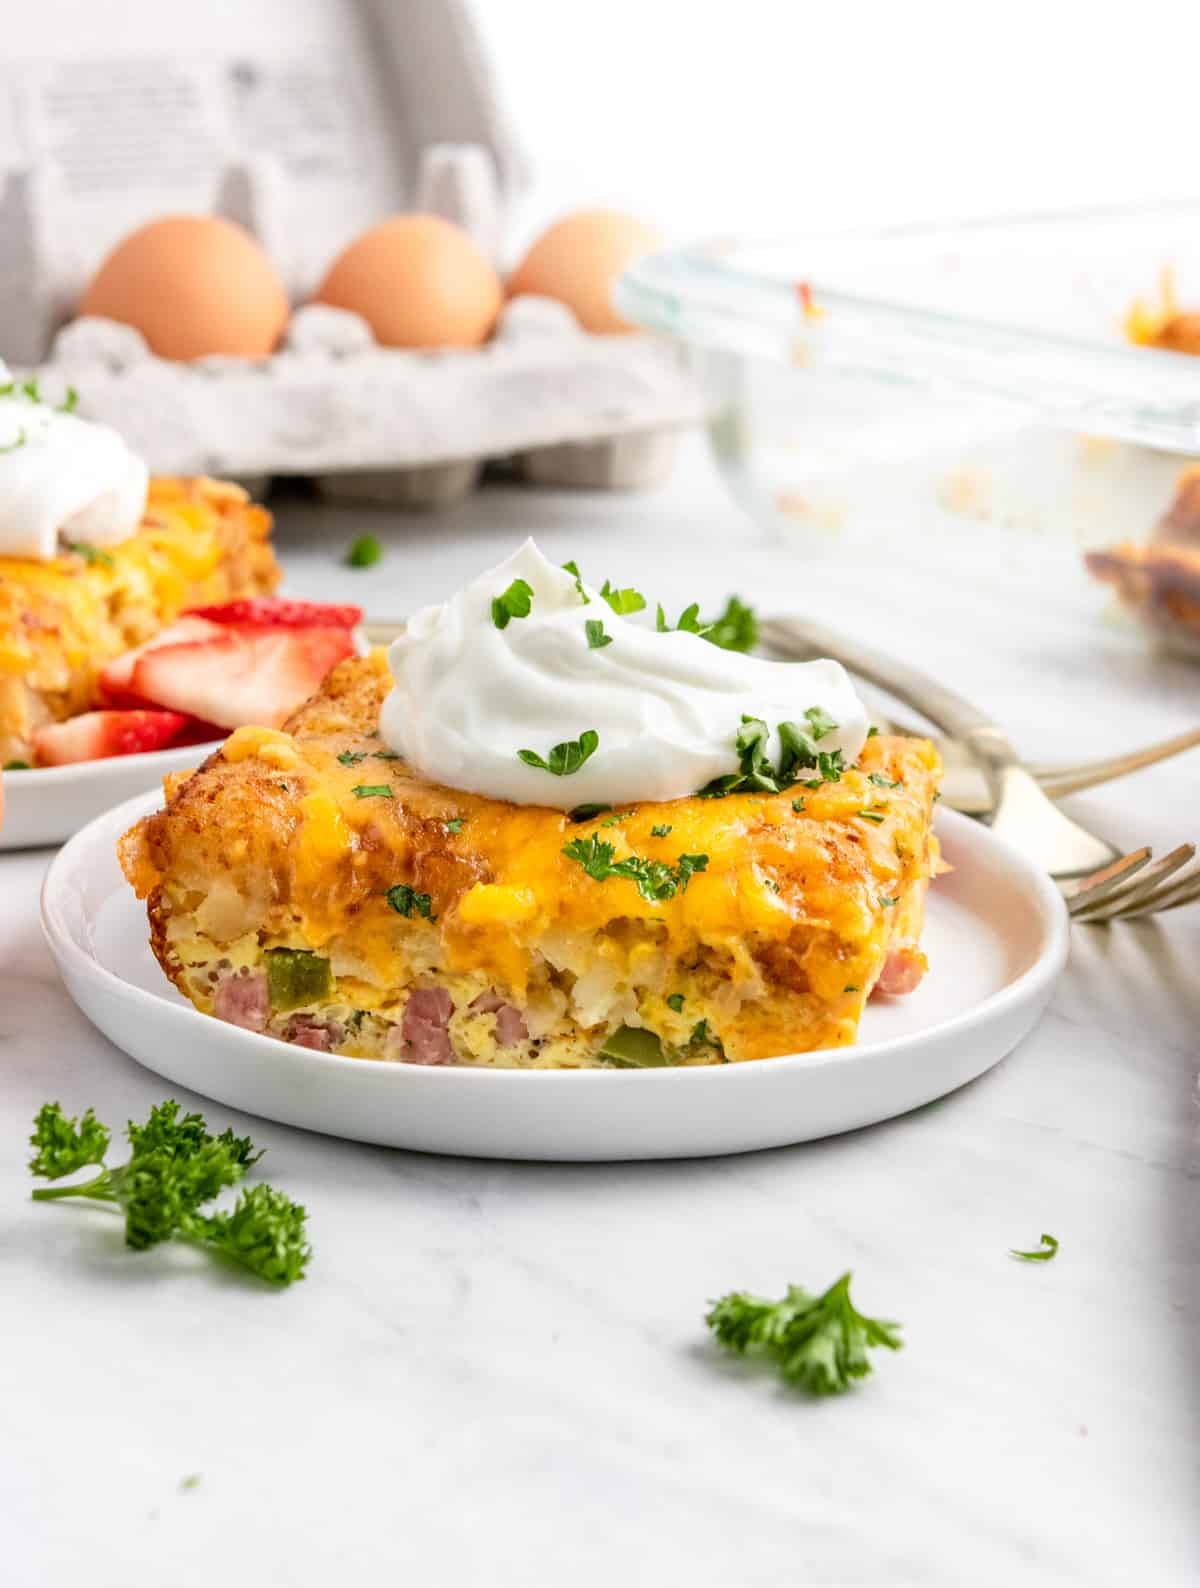 Breakfast casserole with tator tots with sour cream on white plate.